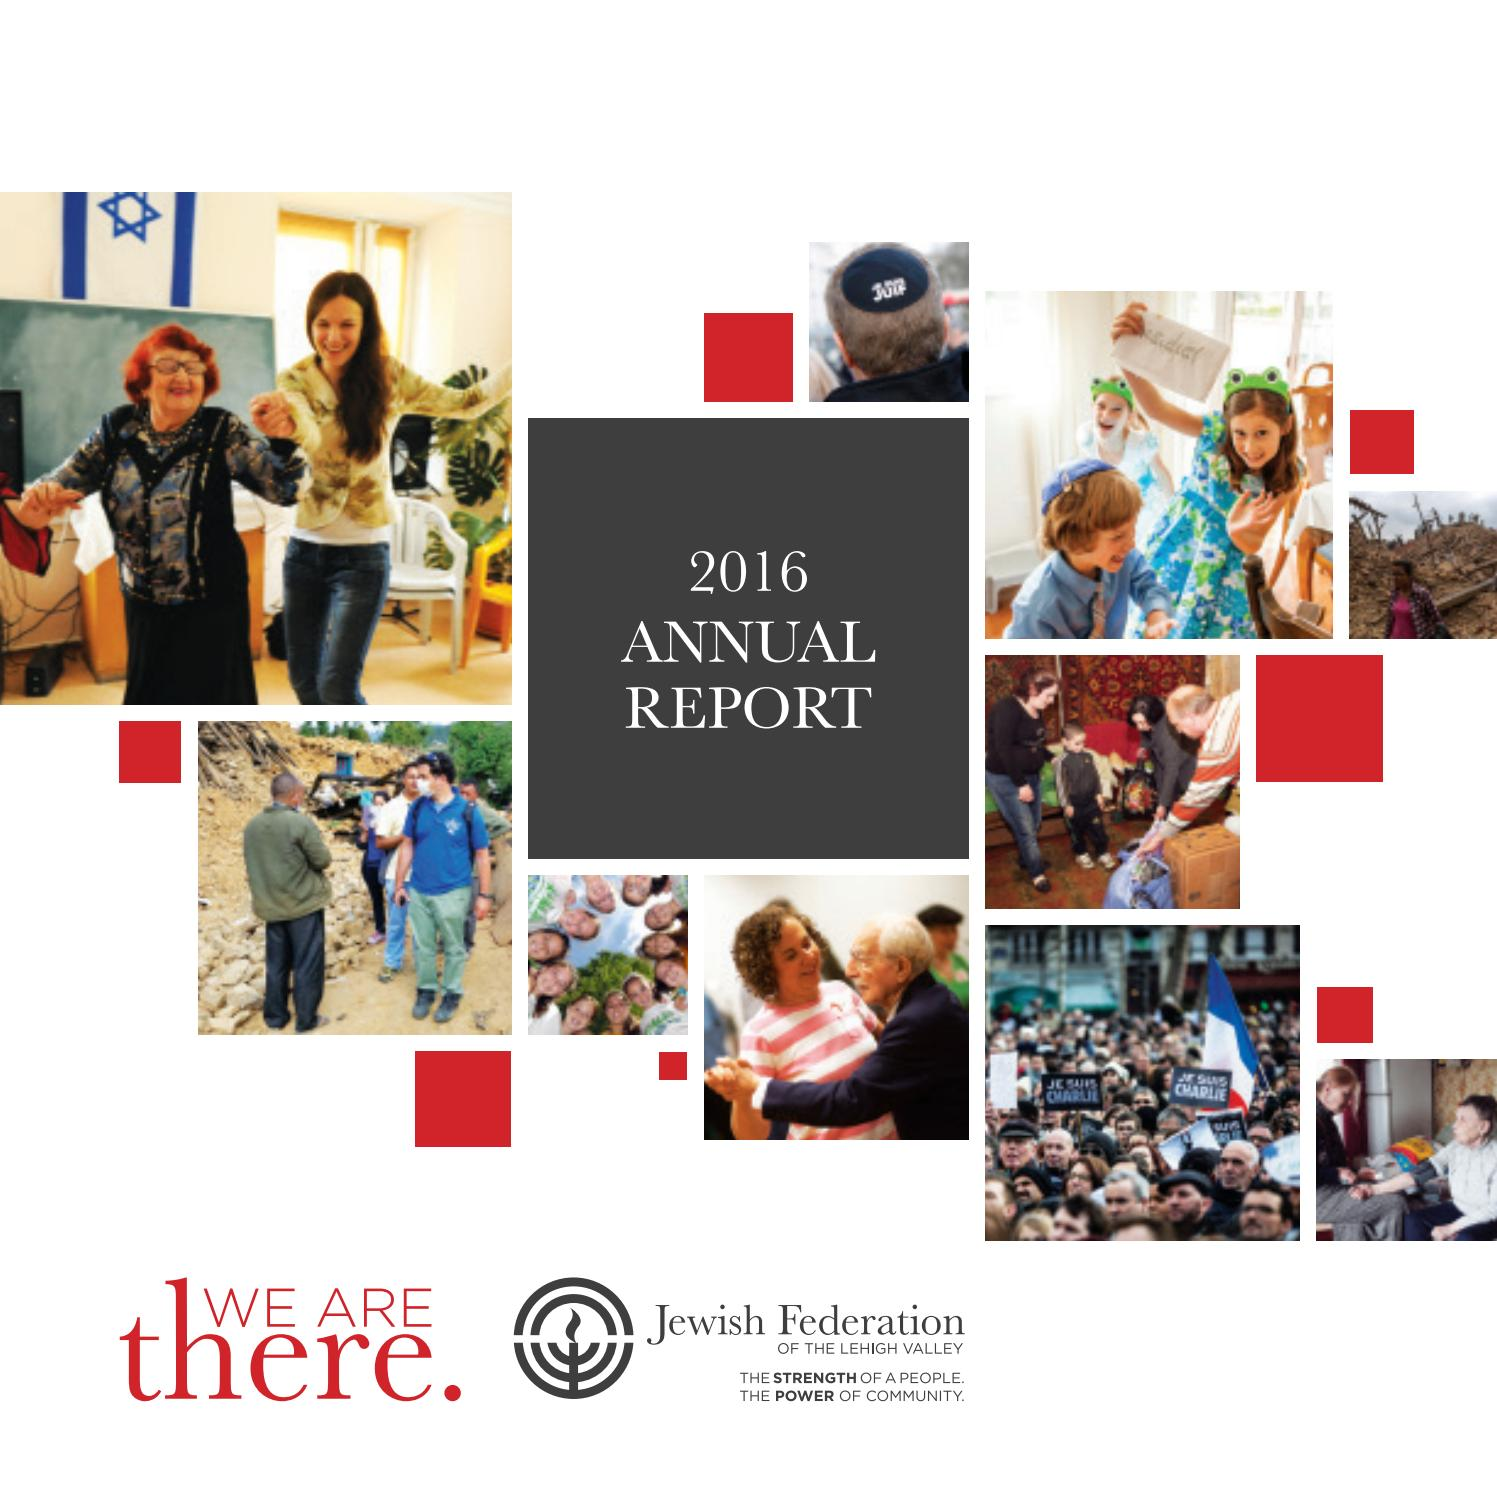 Annual Report 2016 by Jewish Federation of the Lehigh Valley - issuu